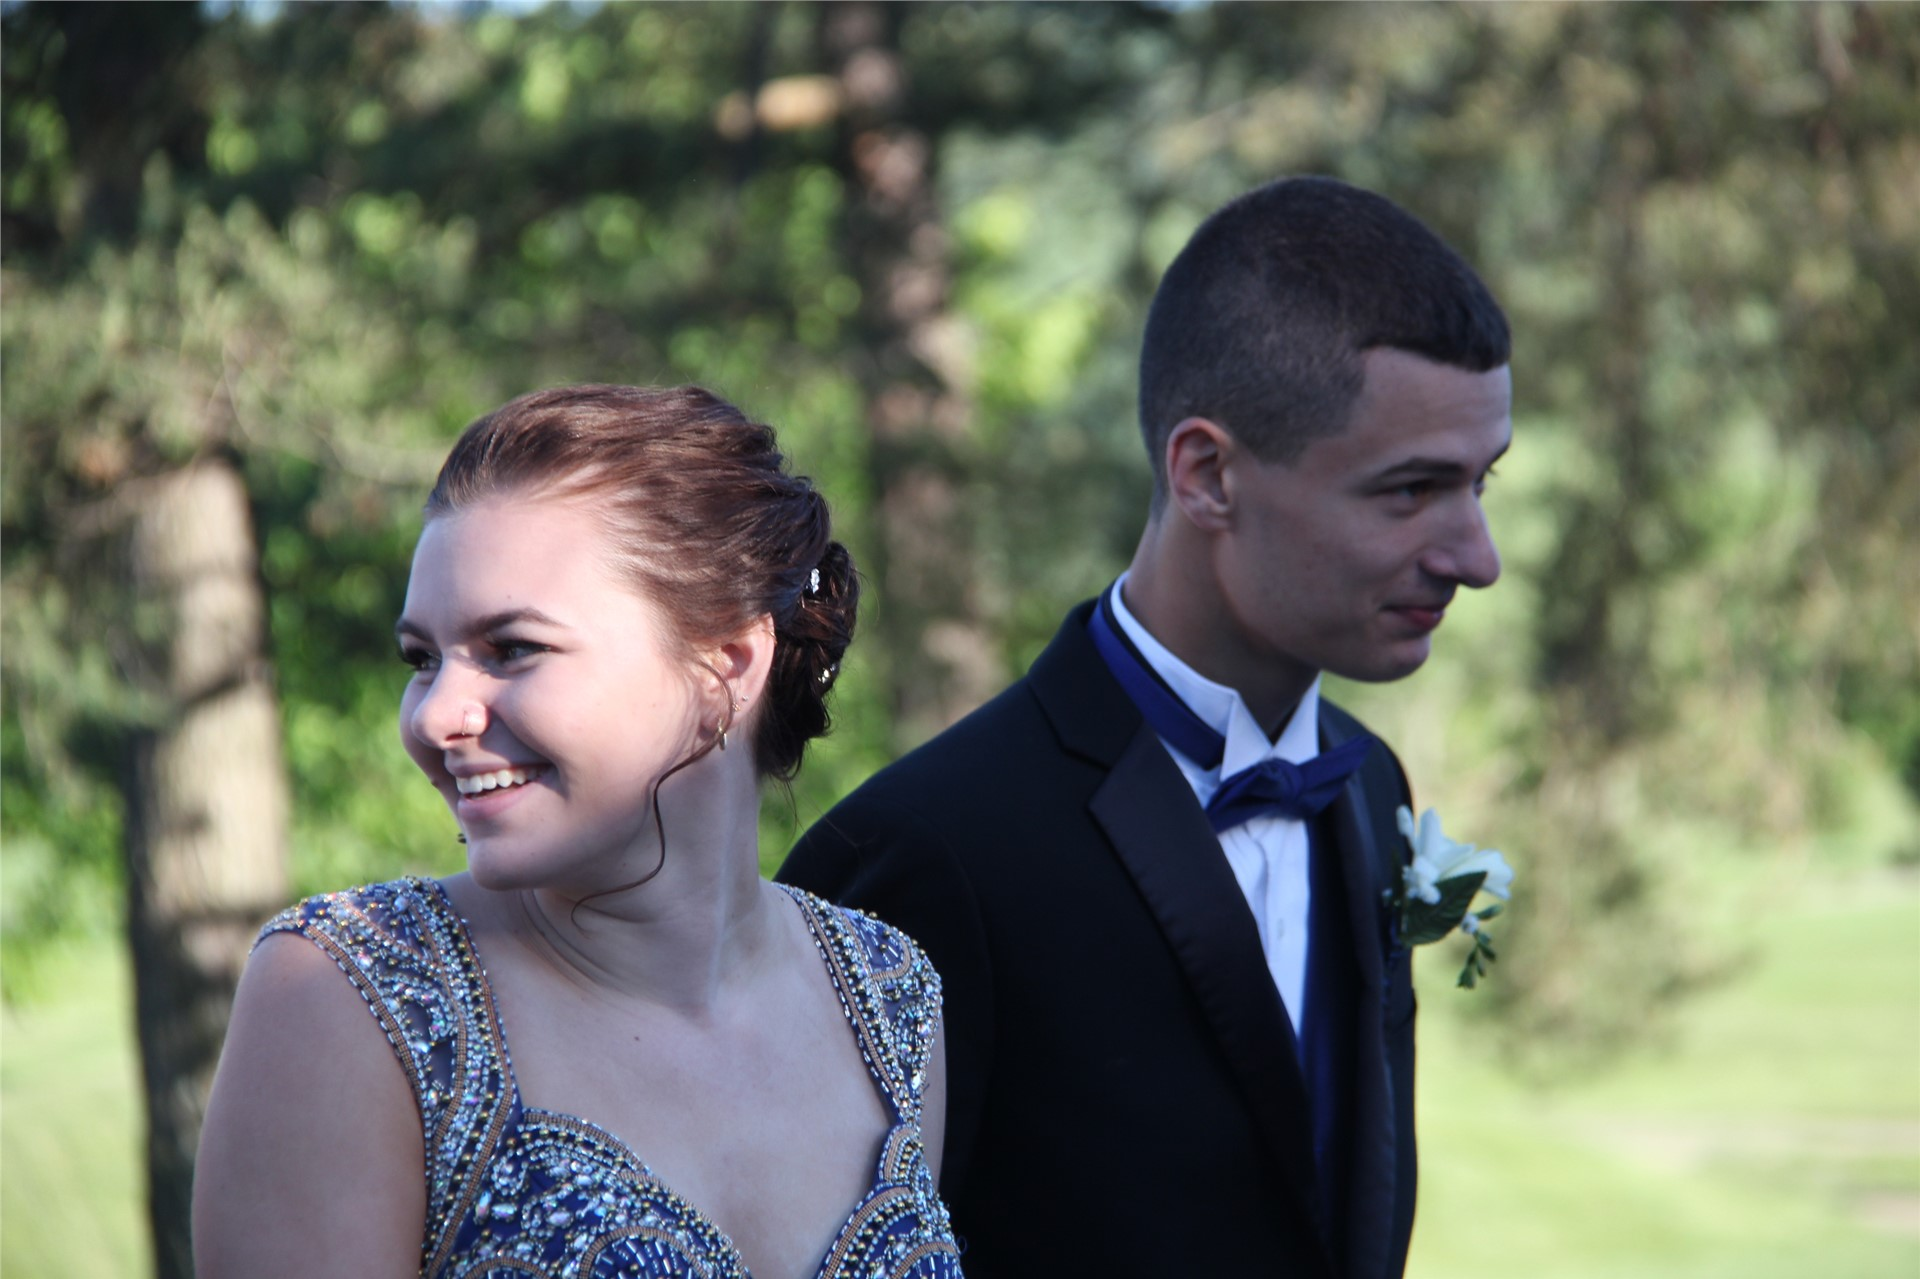 prom dates smile while standing in line to get into prom